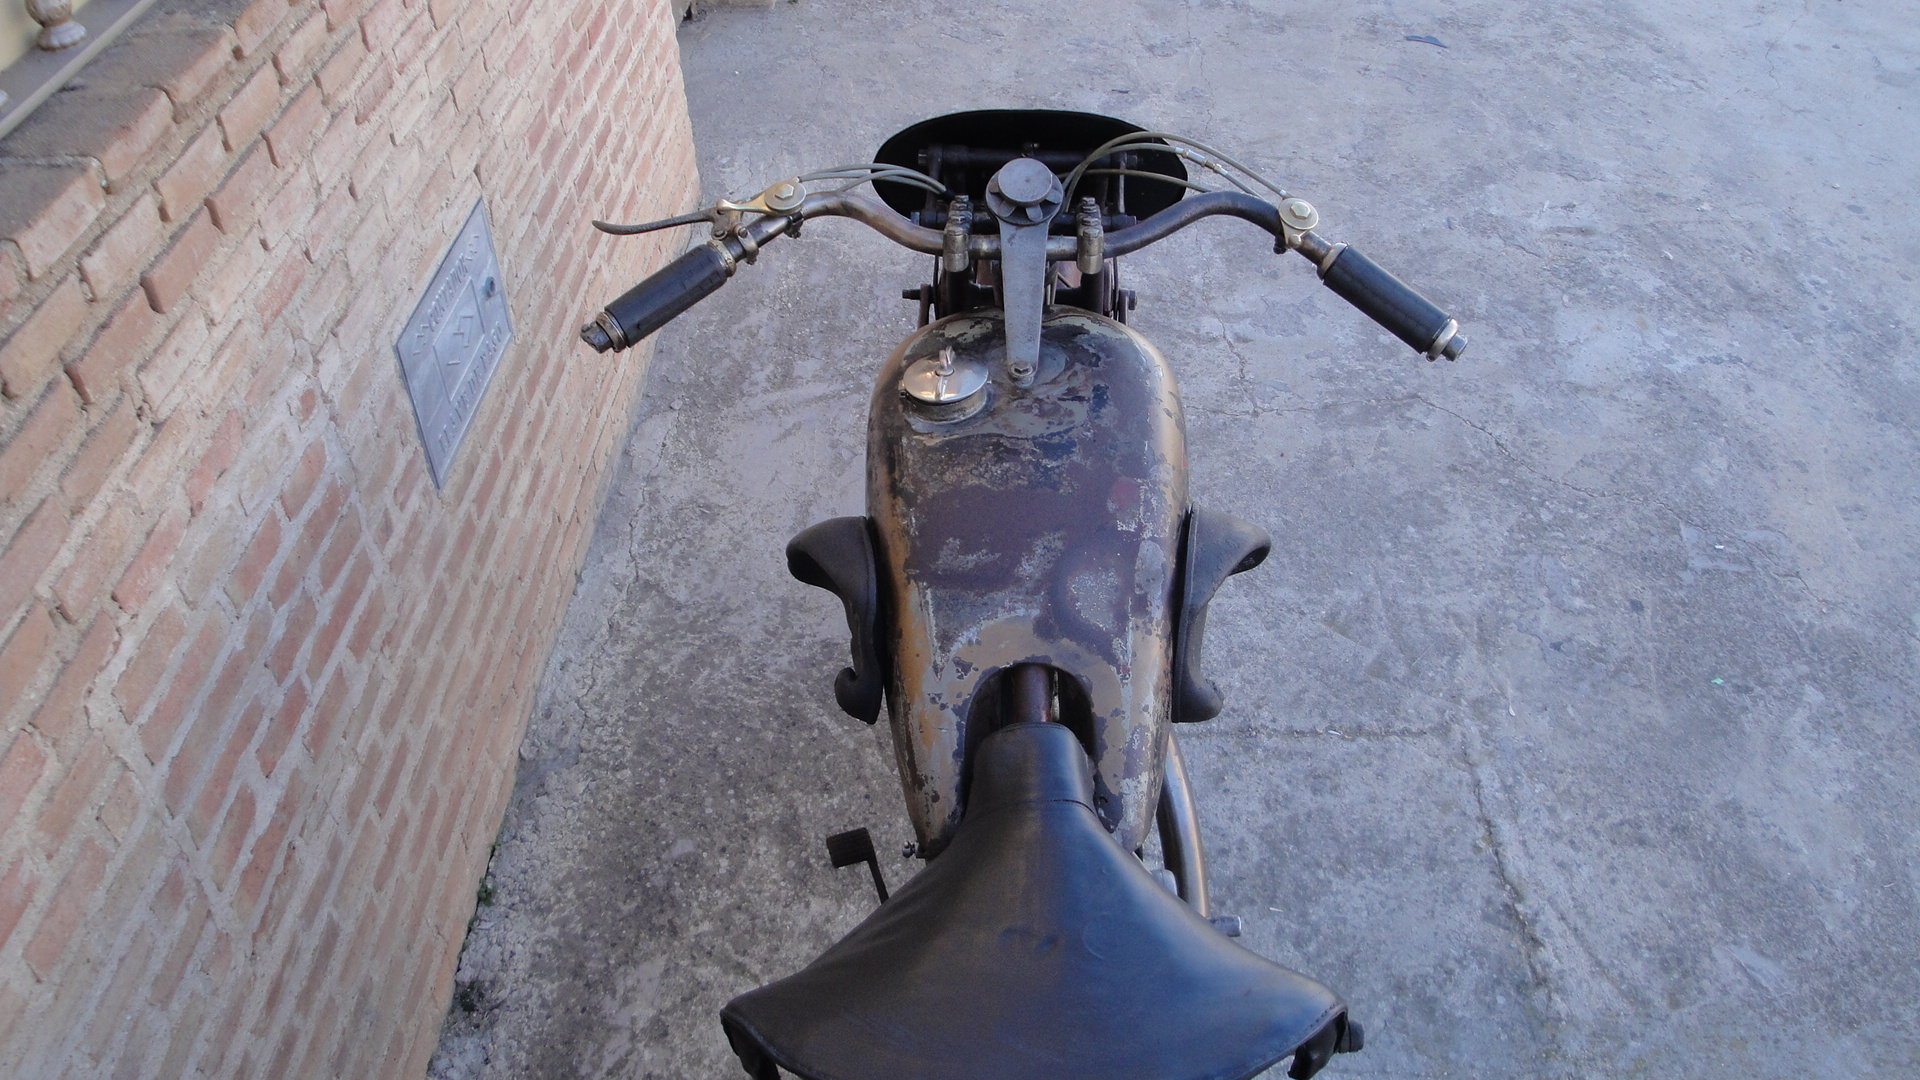 VELOCETTE KN 350cc OHC RACER YEAR 1929 For Sale (picture 5 of 6)